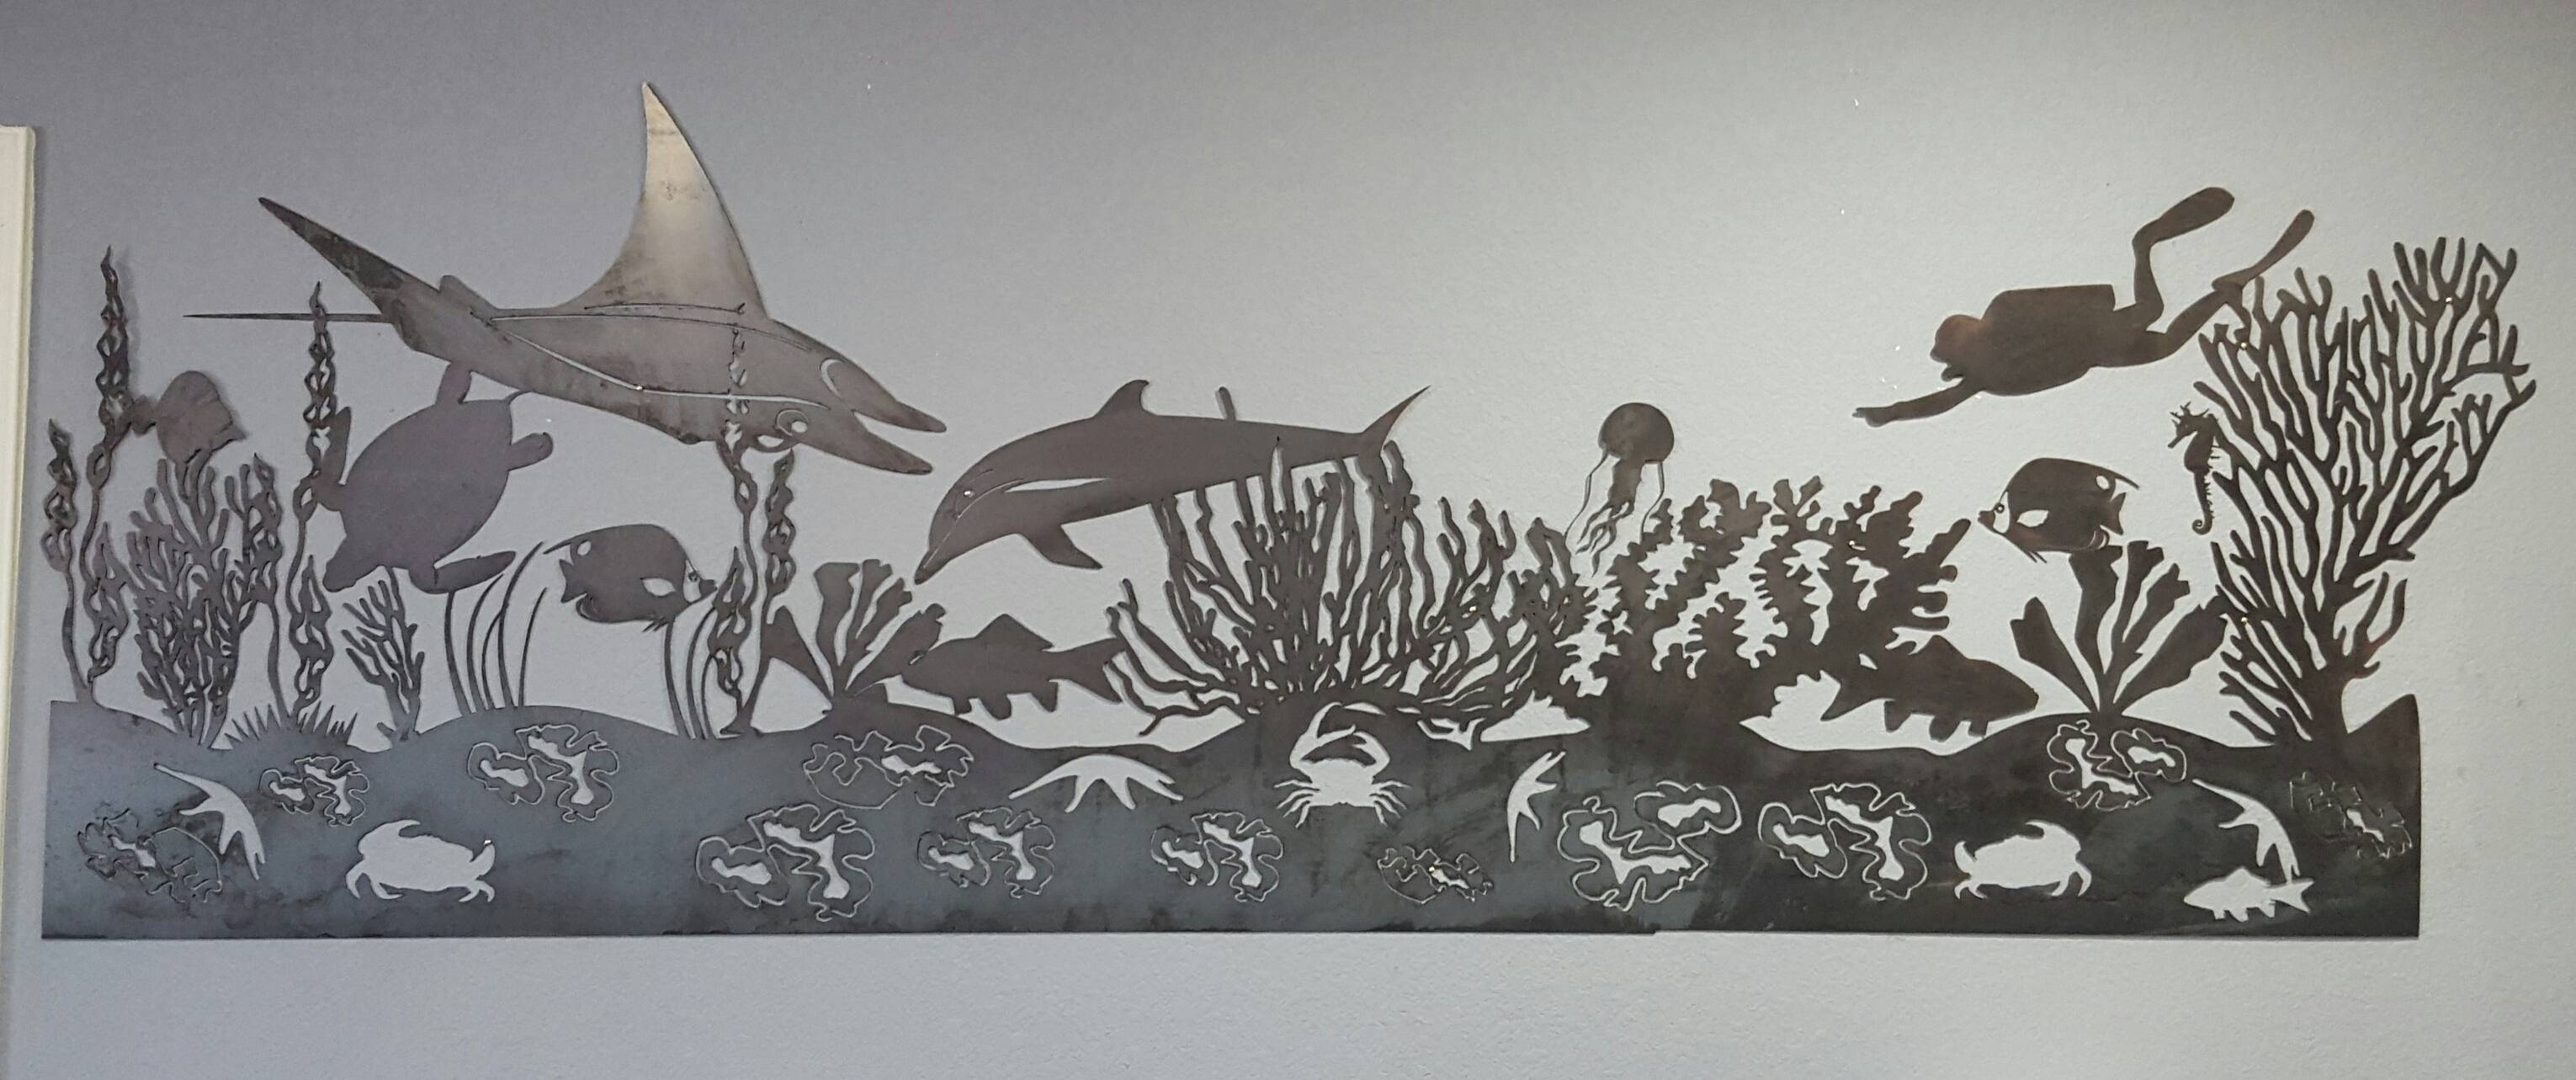 Sea Life Mural Metal Wall Art | Blue Collar Welding Llc With Regard To Newest Turtle Metal Wall Art (View 12 of 20)